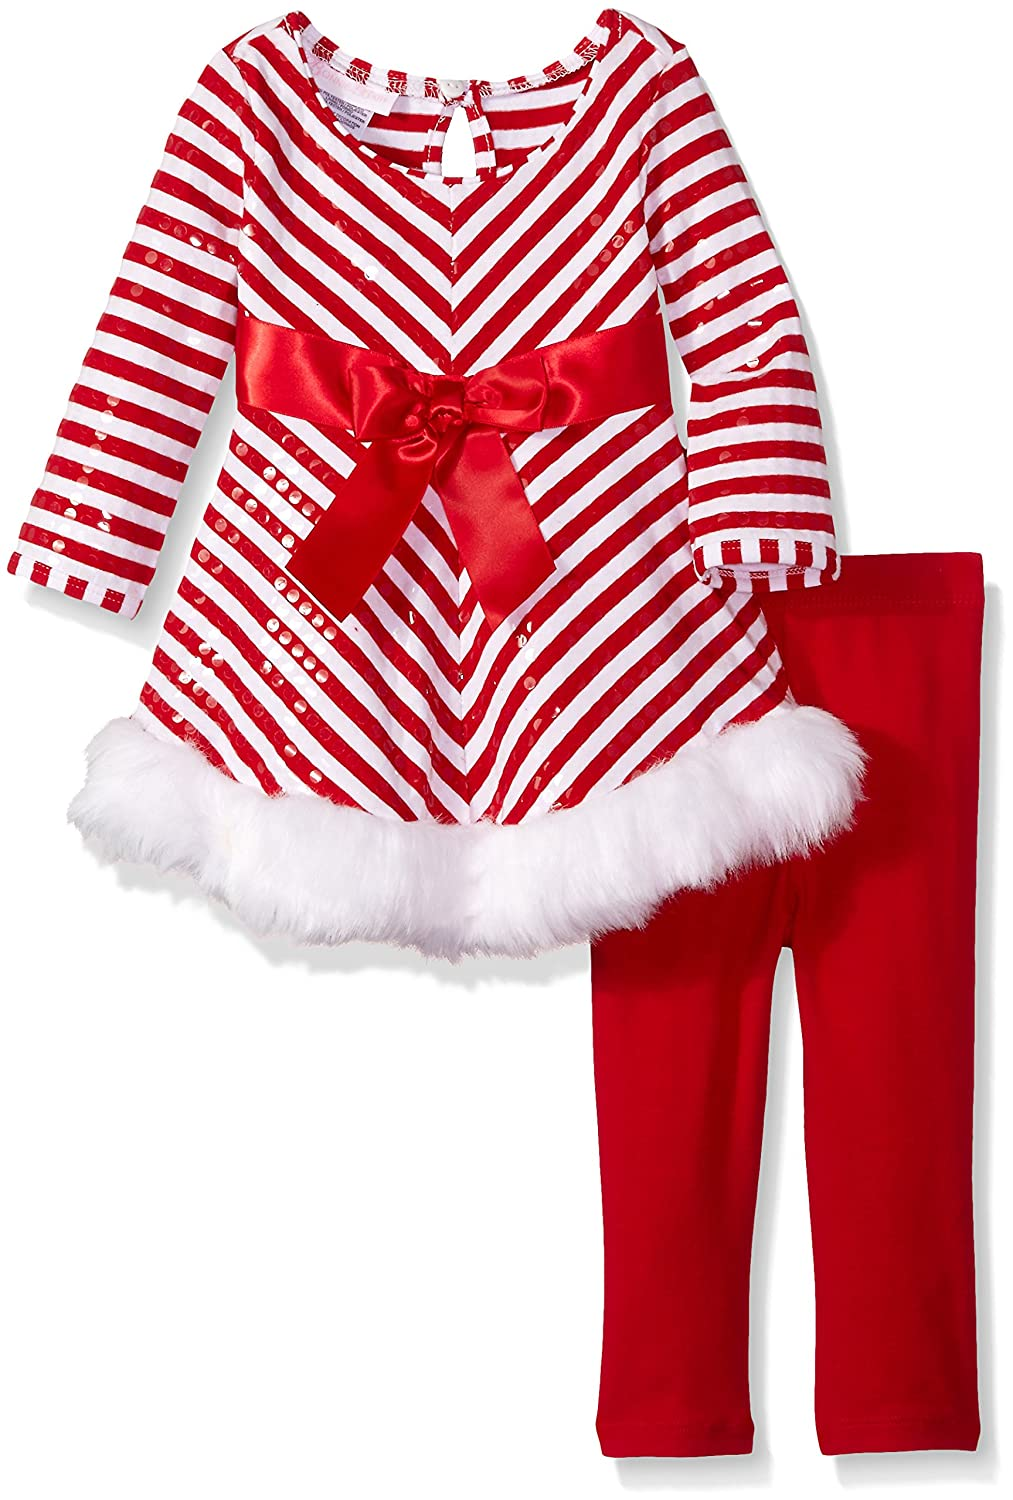 a5d82893133 Amazon.com: Bonnie Baby Baby Girls' Candy Cane Striped Playwear Set:  Clothing